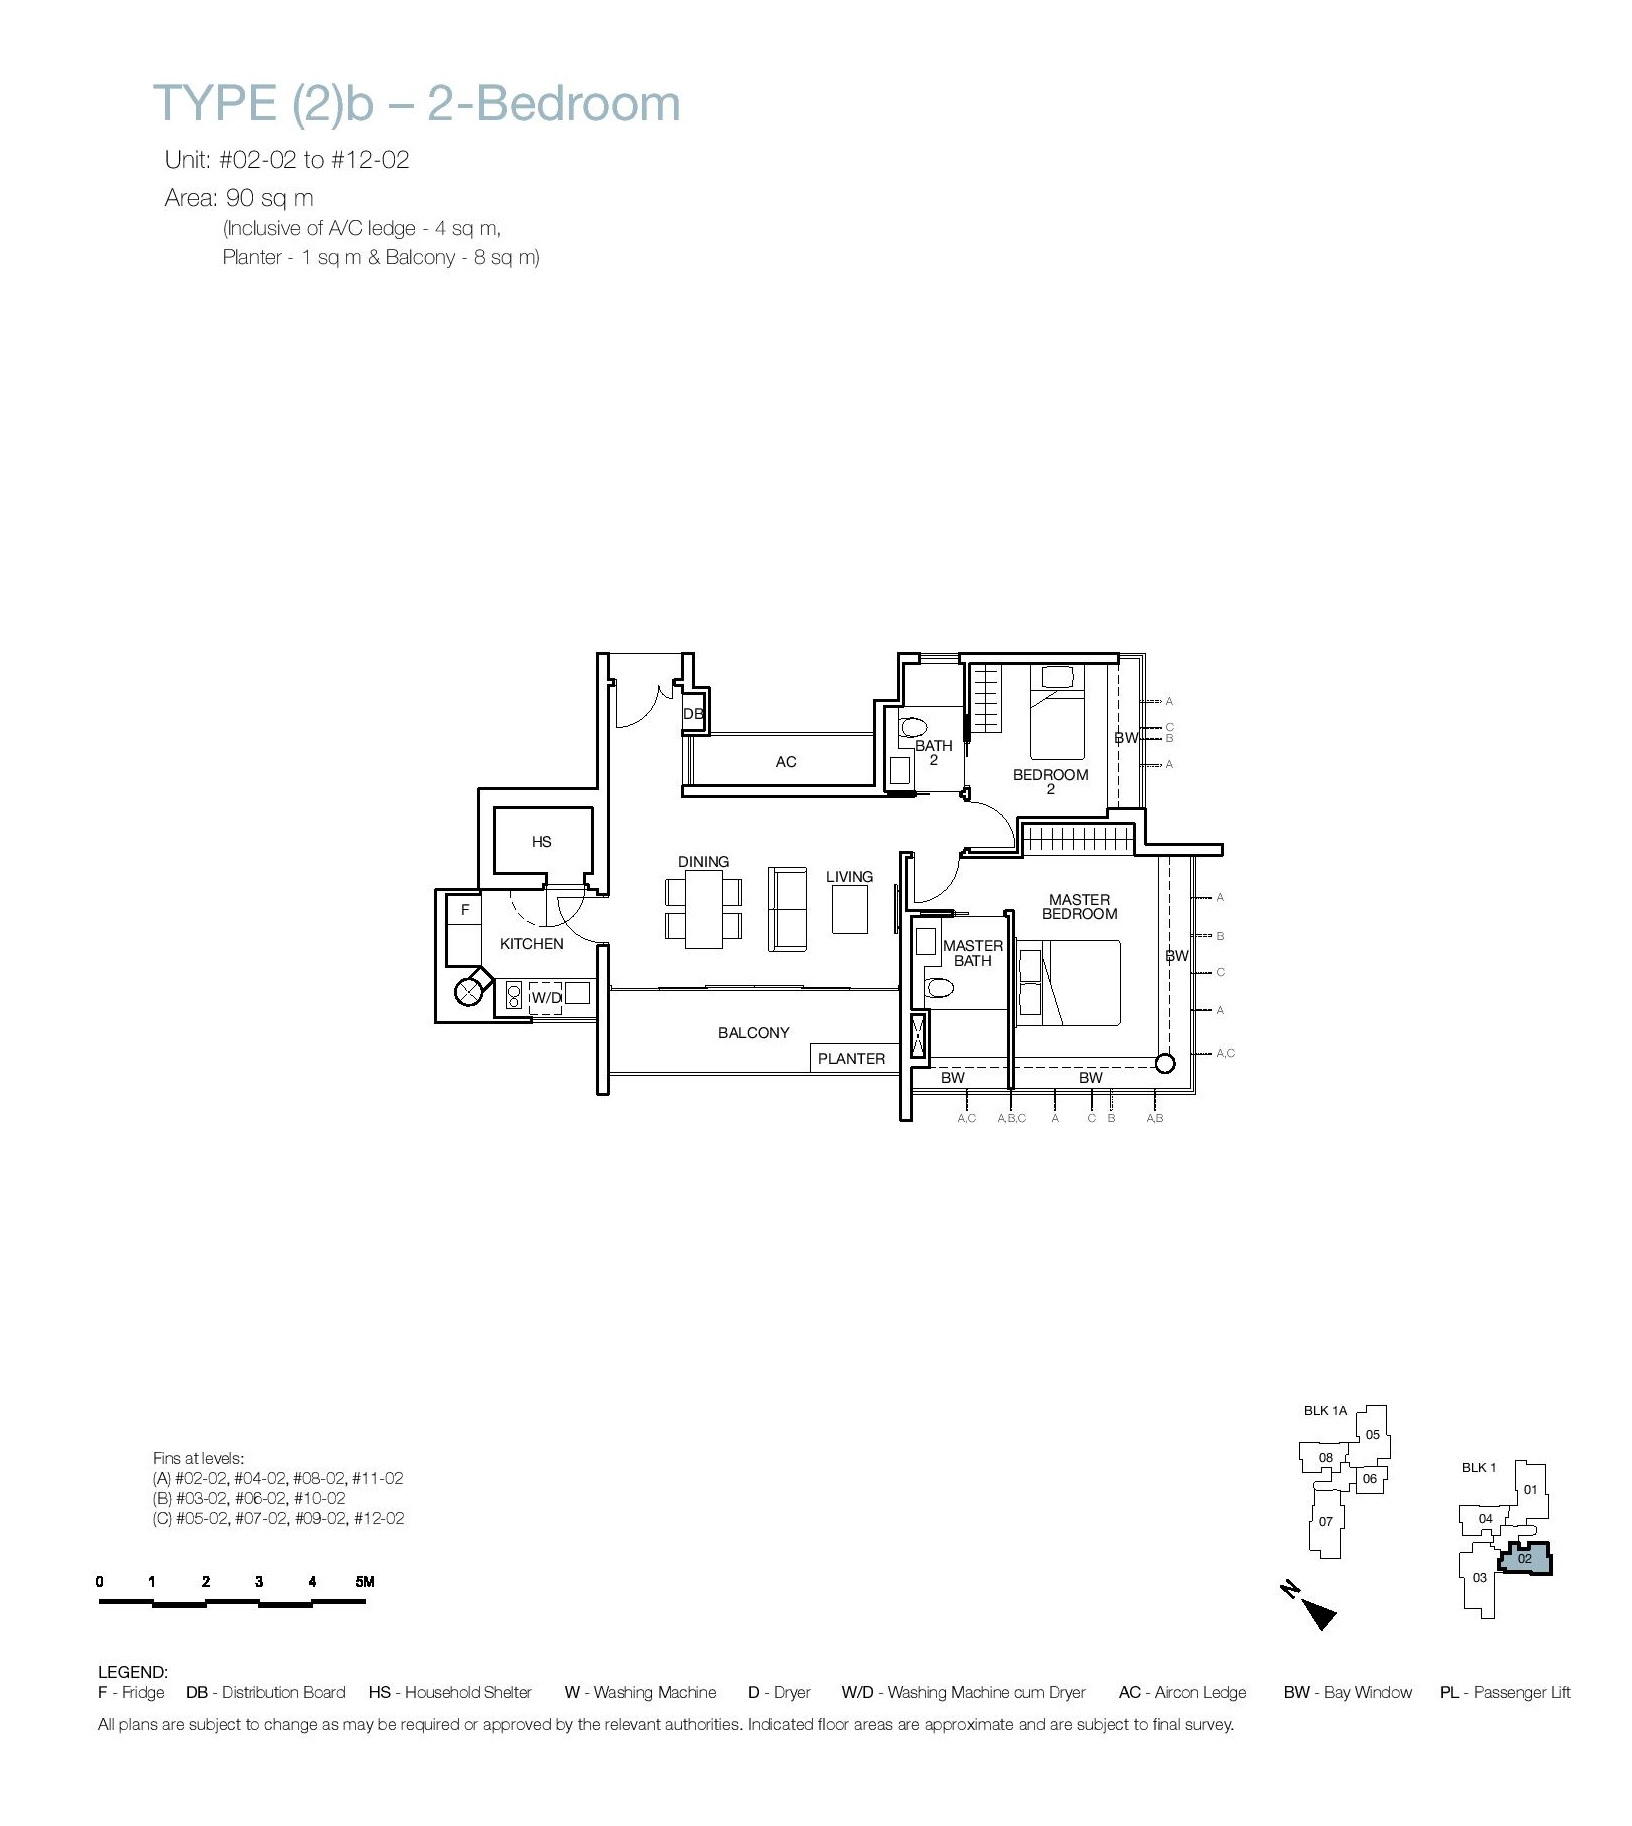 One Balmoral 2 Bedroom Floor Type (2)b Plans